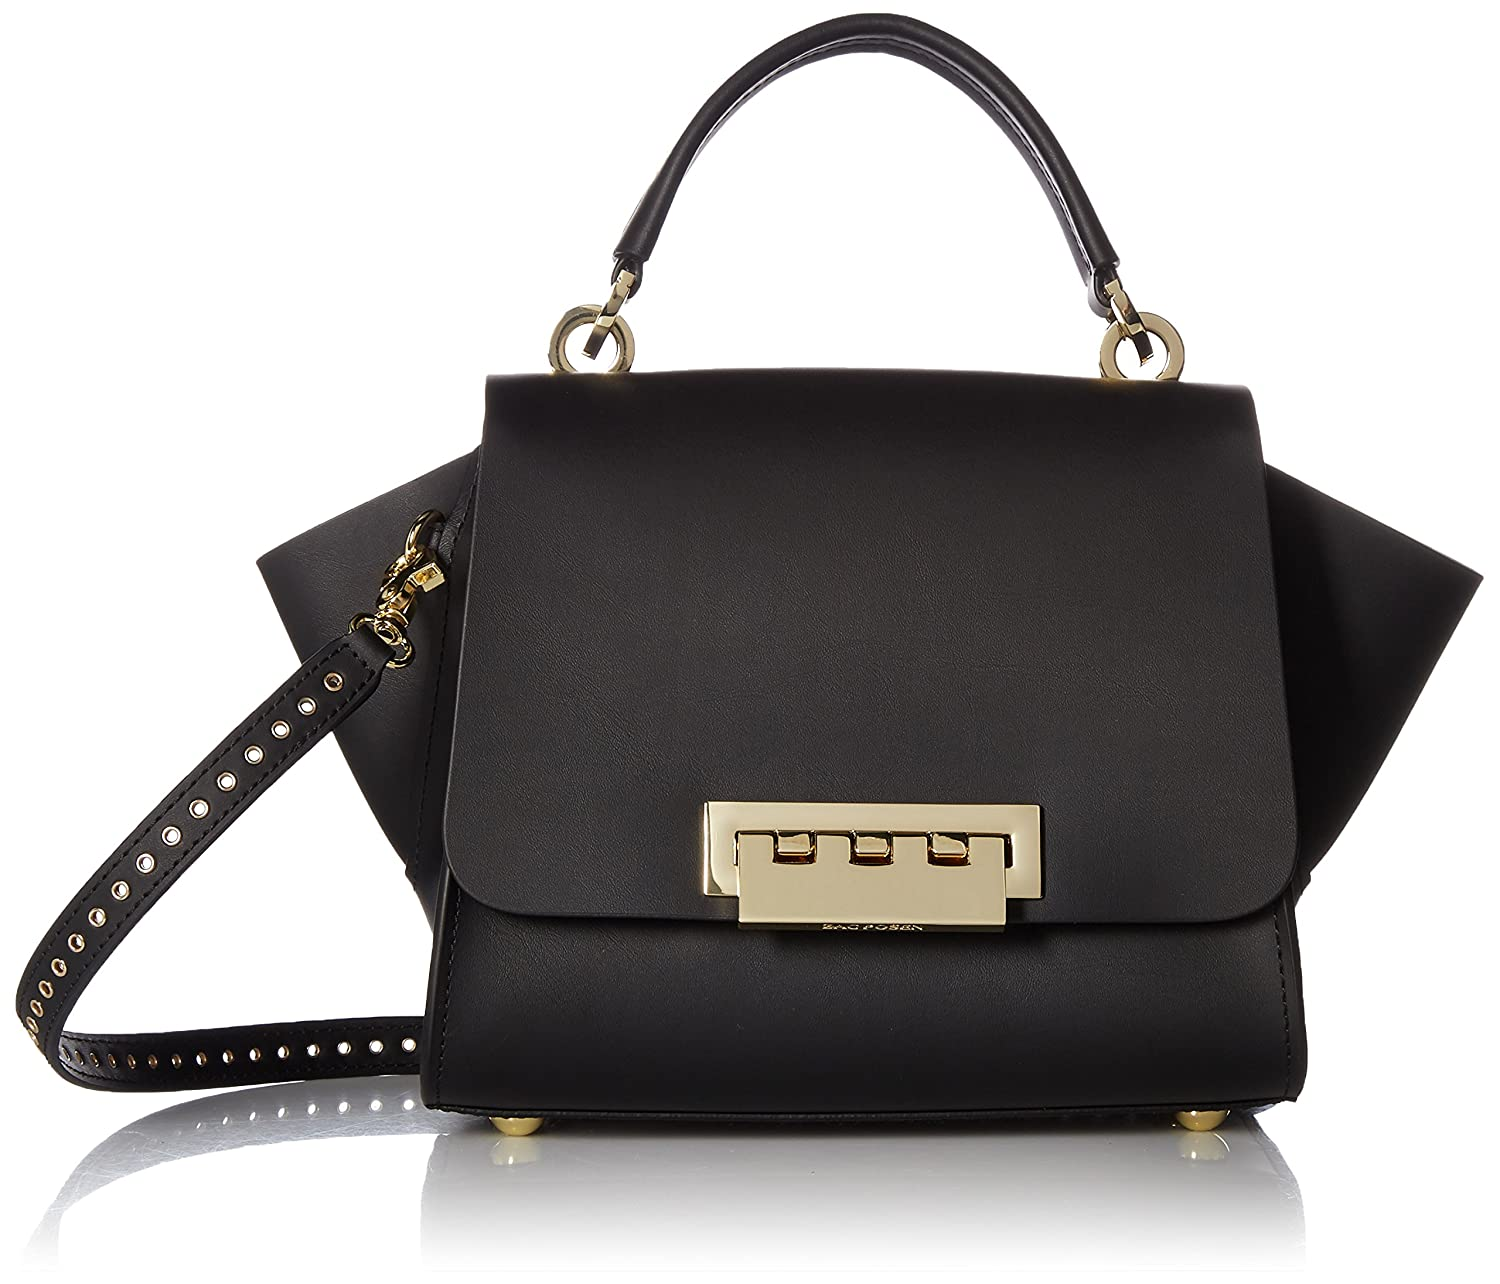 ZAC Zac Posen Eartha Top Handle Crossbody-Black Core ZP5151-001